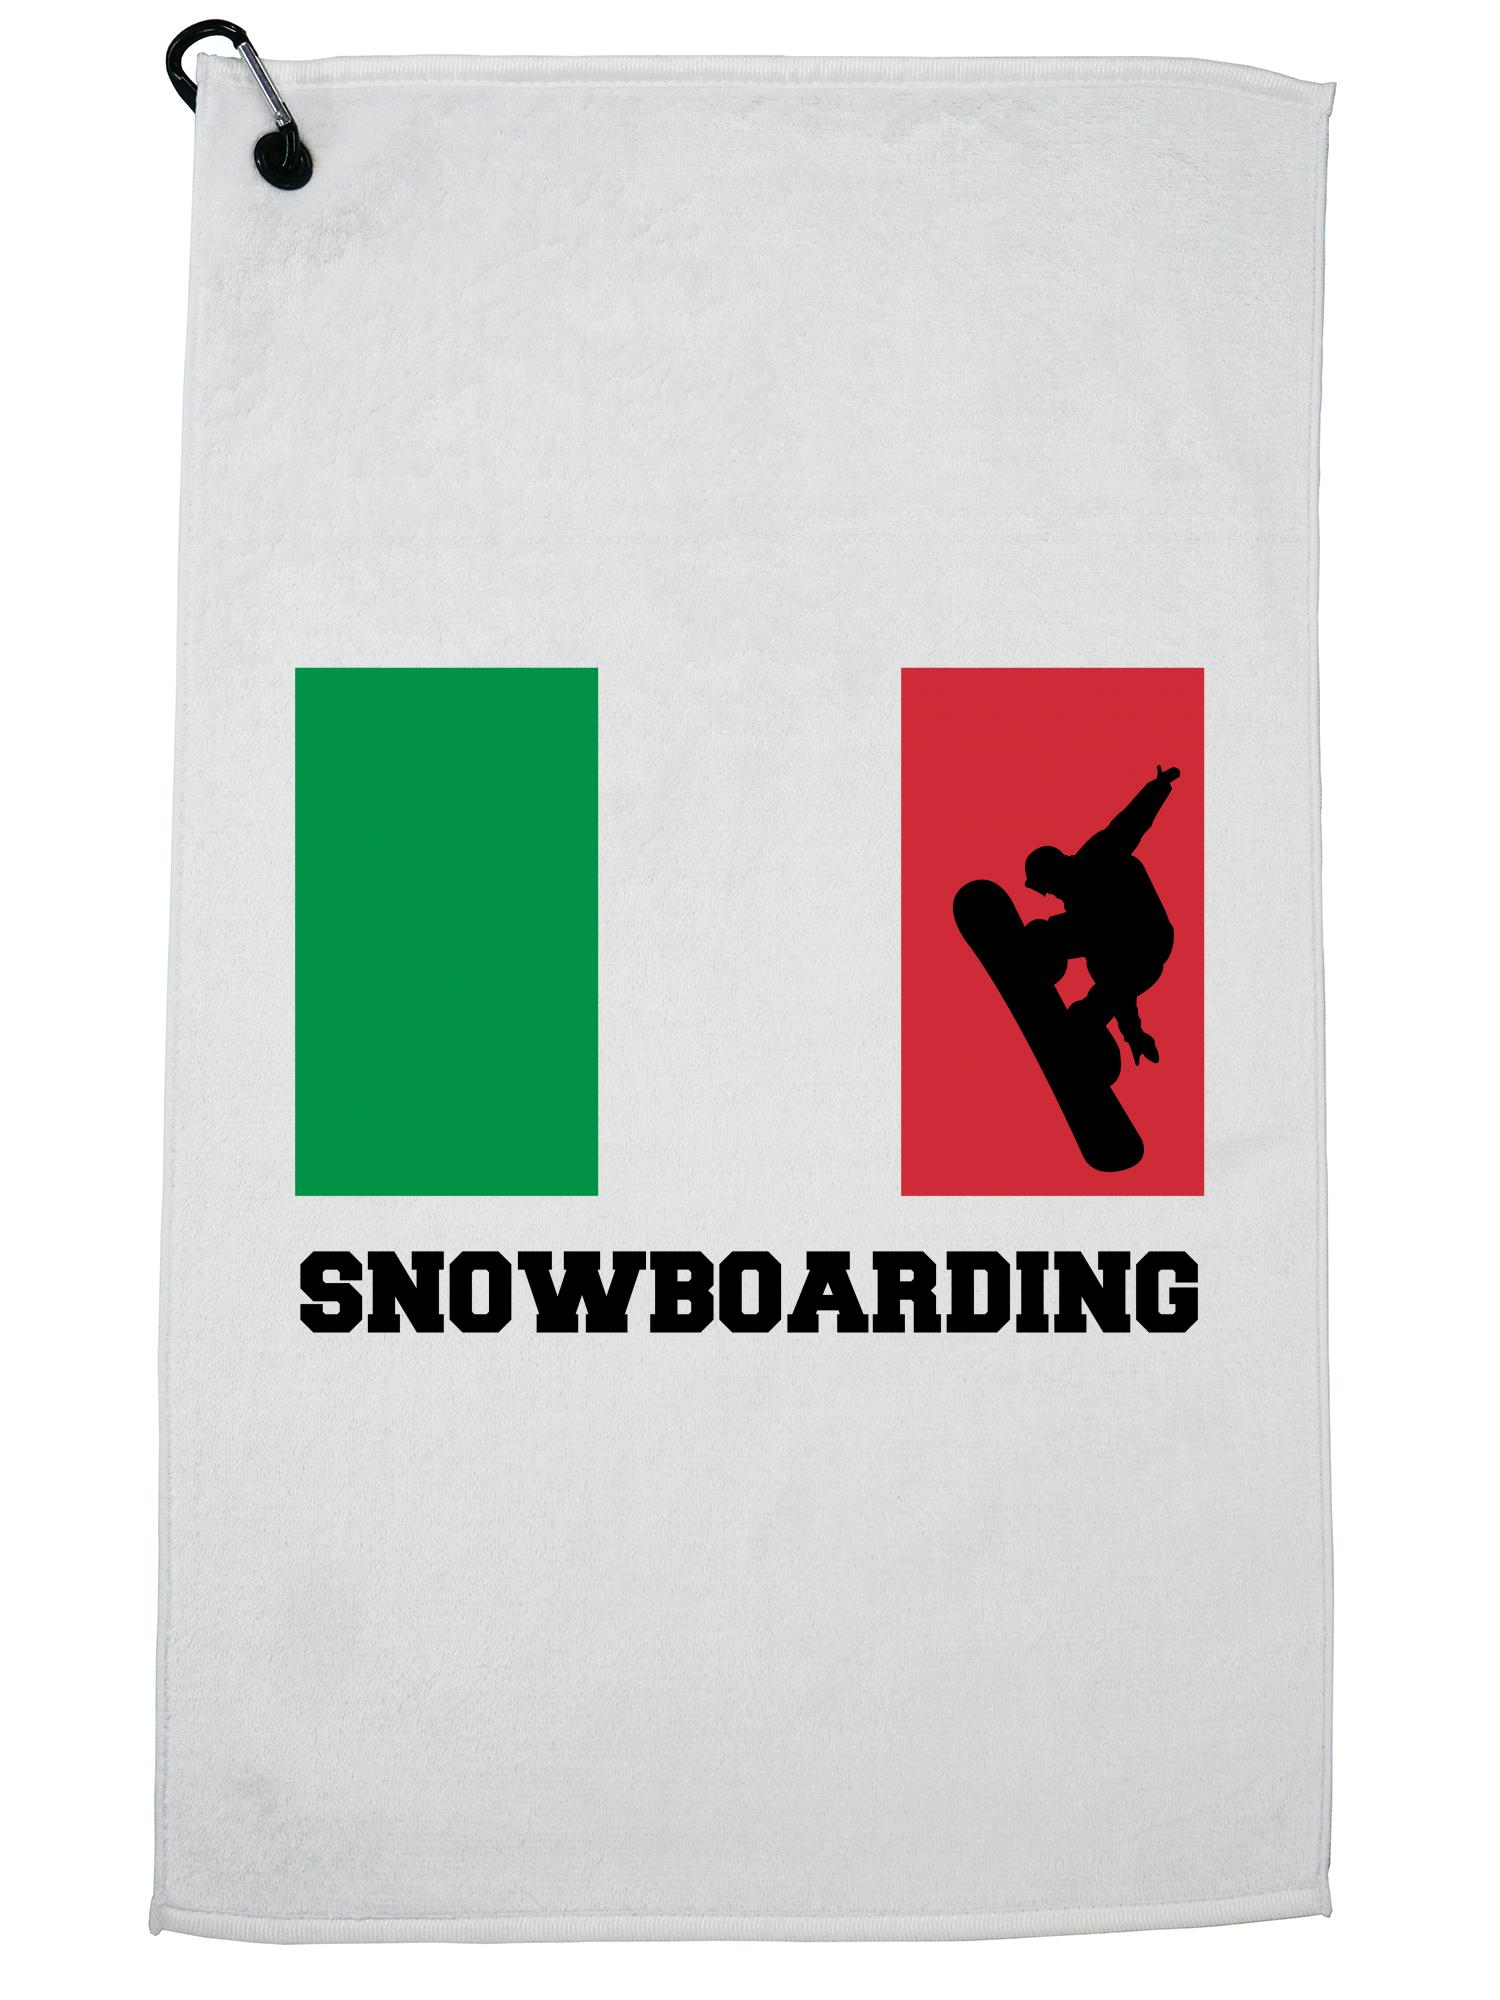 Italy Olympic Snowboarding Flag Silhouette Golf Towel with Carabiner Clip by Hollywood Thread